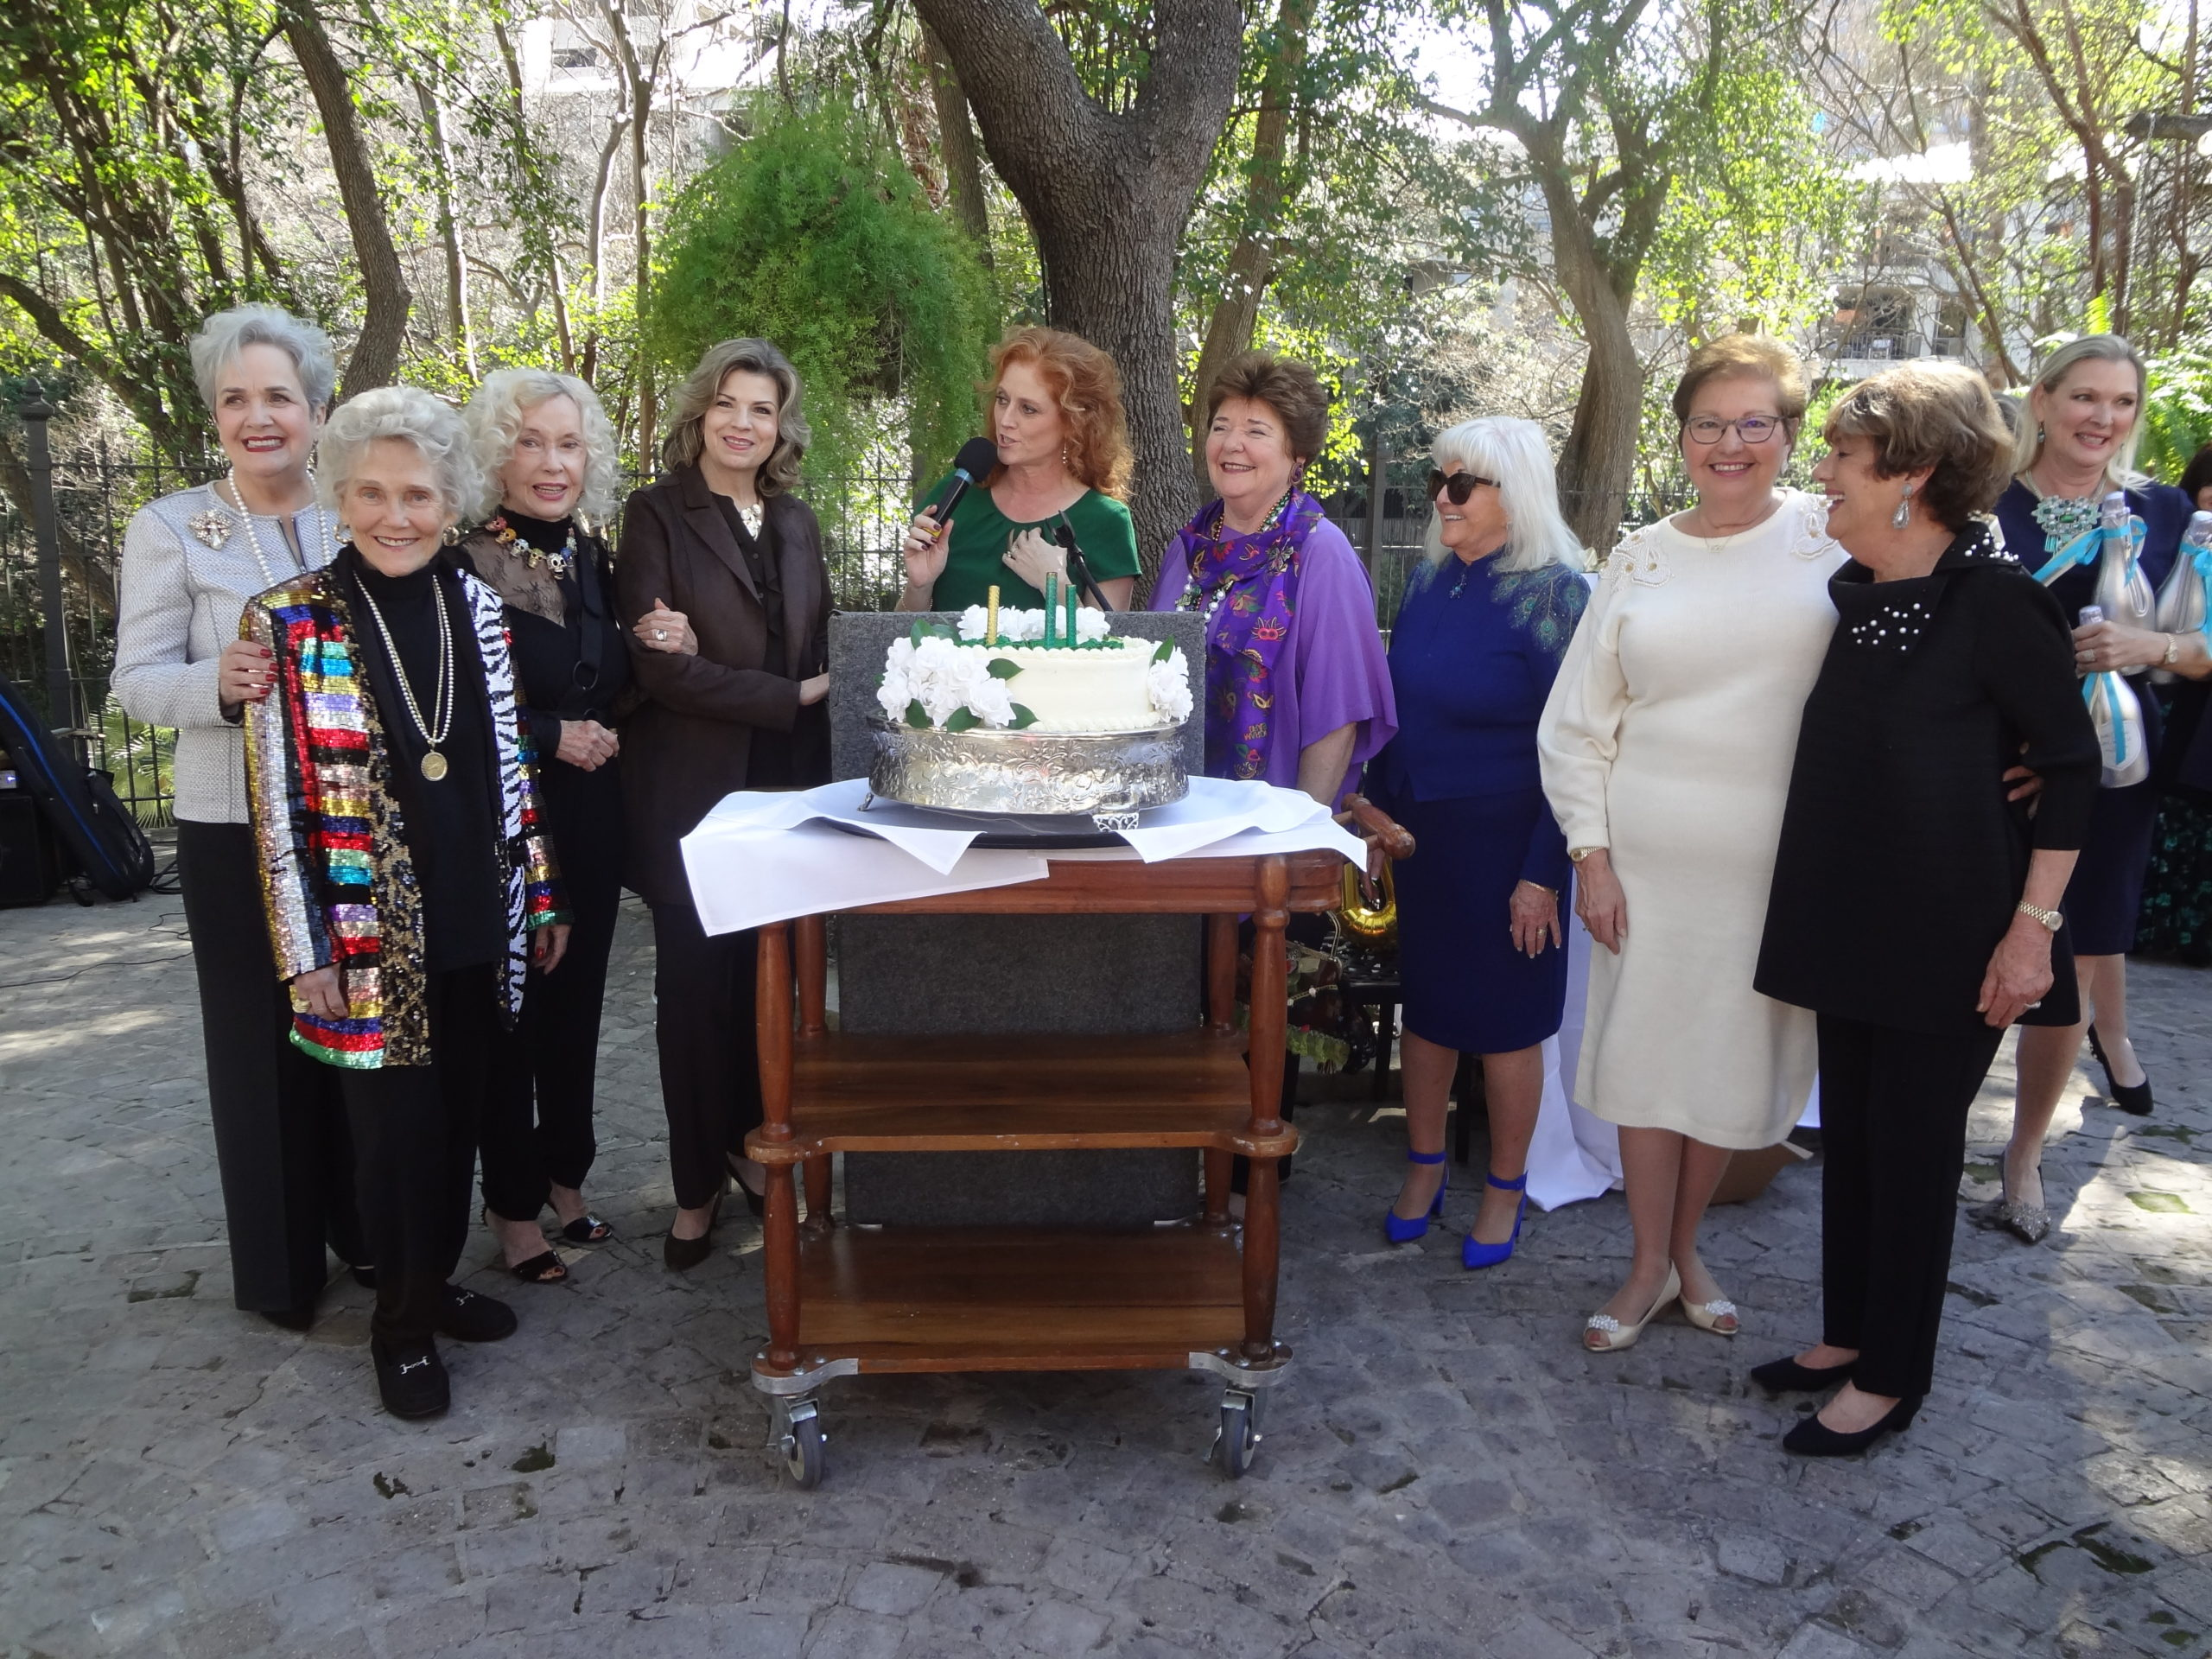 Past Presidents in attendance included Veronica Boldt Rose Marie Banack DeeAnn Simpson Carolina Canales Siobhain Anders Nancy Marion Joan Gaither Liz Jauer and Mertie Wood